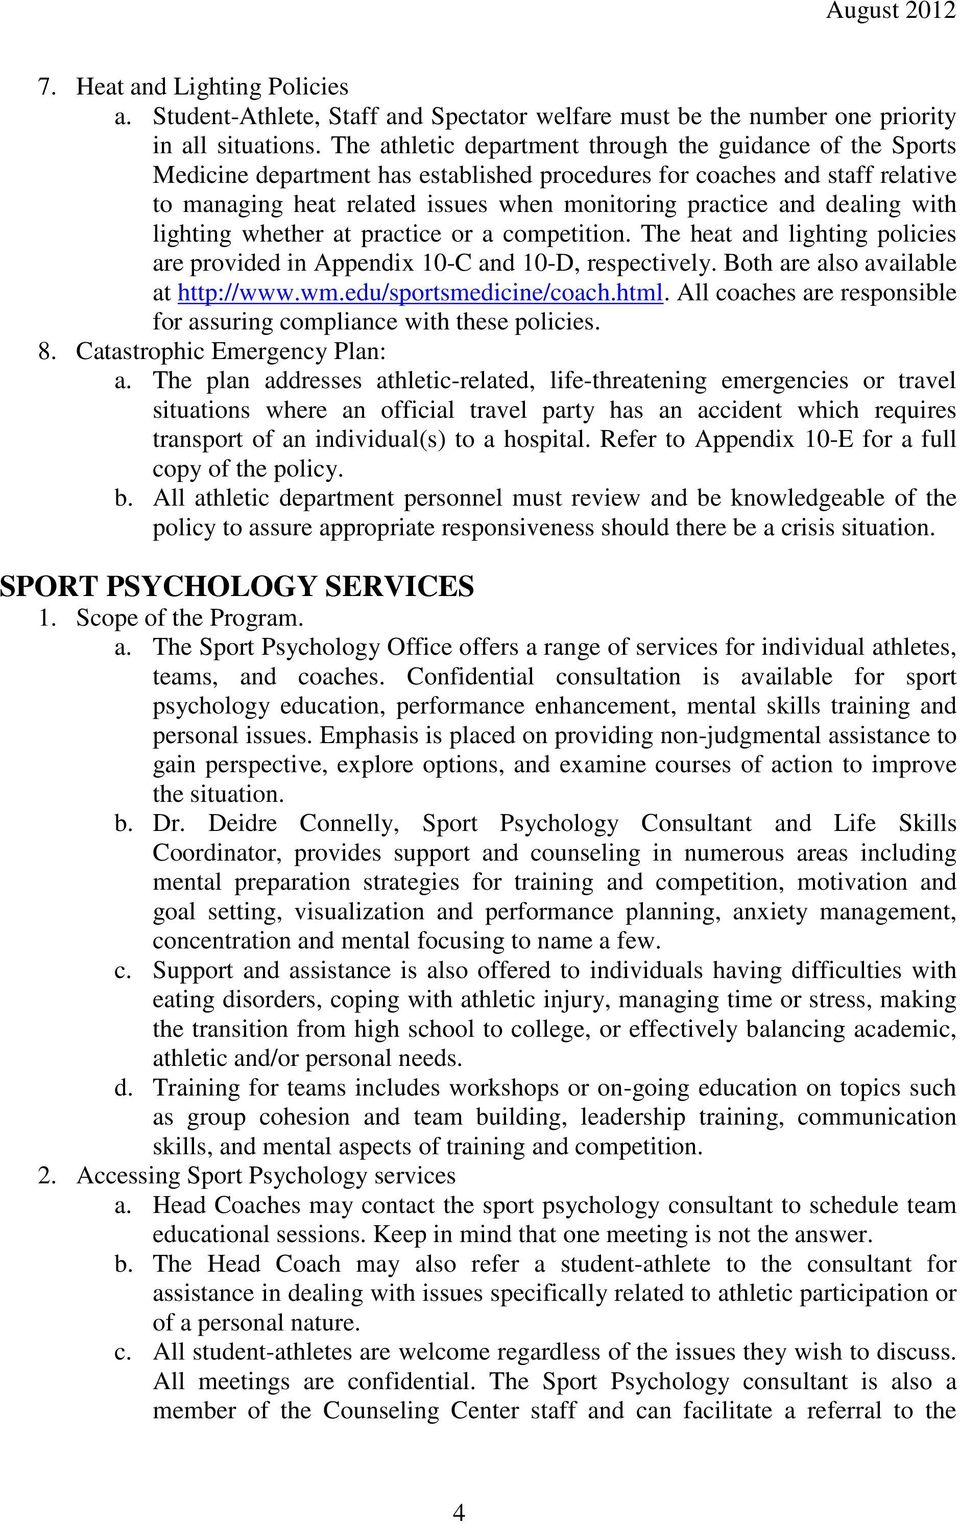 dealing with lighting whether at practice or a competition. The heat and lighting policies are provided in Appendix 10-C and 10-D, respectively. Both are also available at http://www.wm.